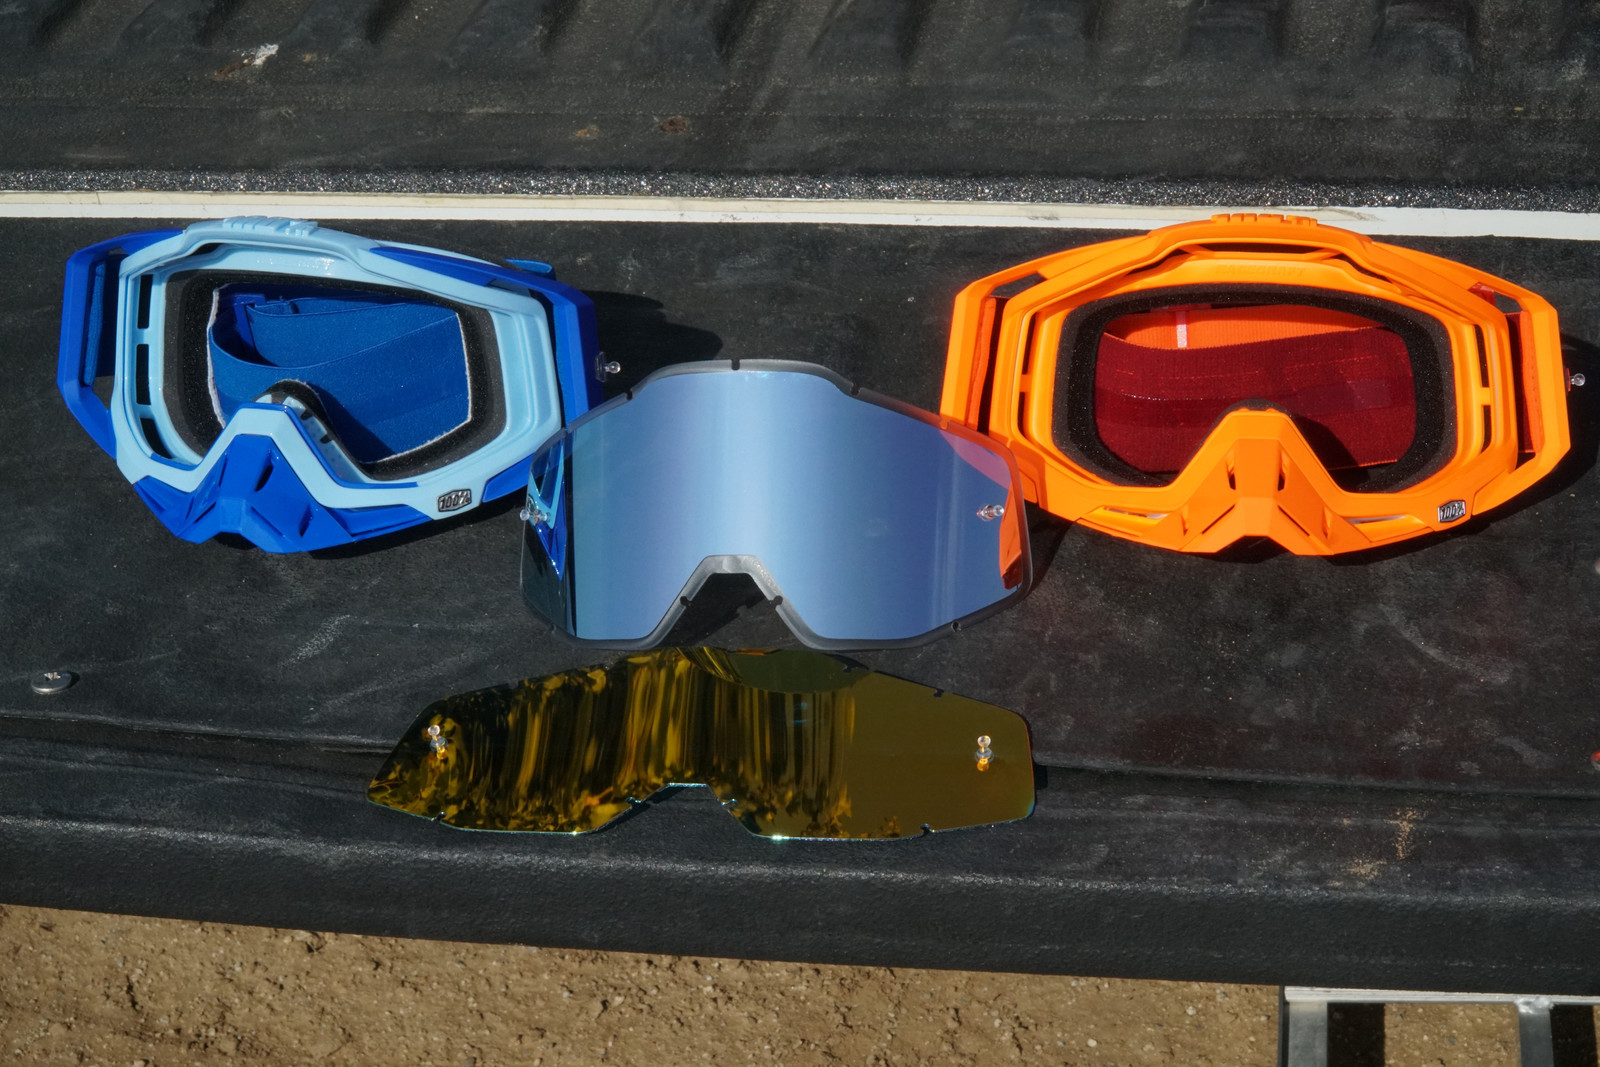 The frames are identical between the Racecraft Plus (blue) and Racecraft (orange) and the lenses are interchangeable.